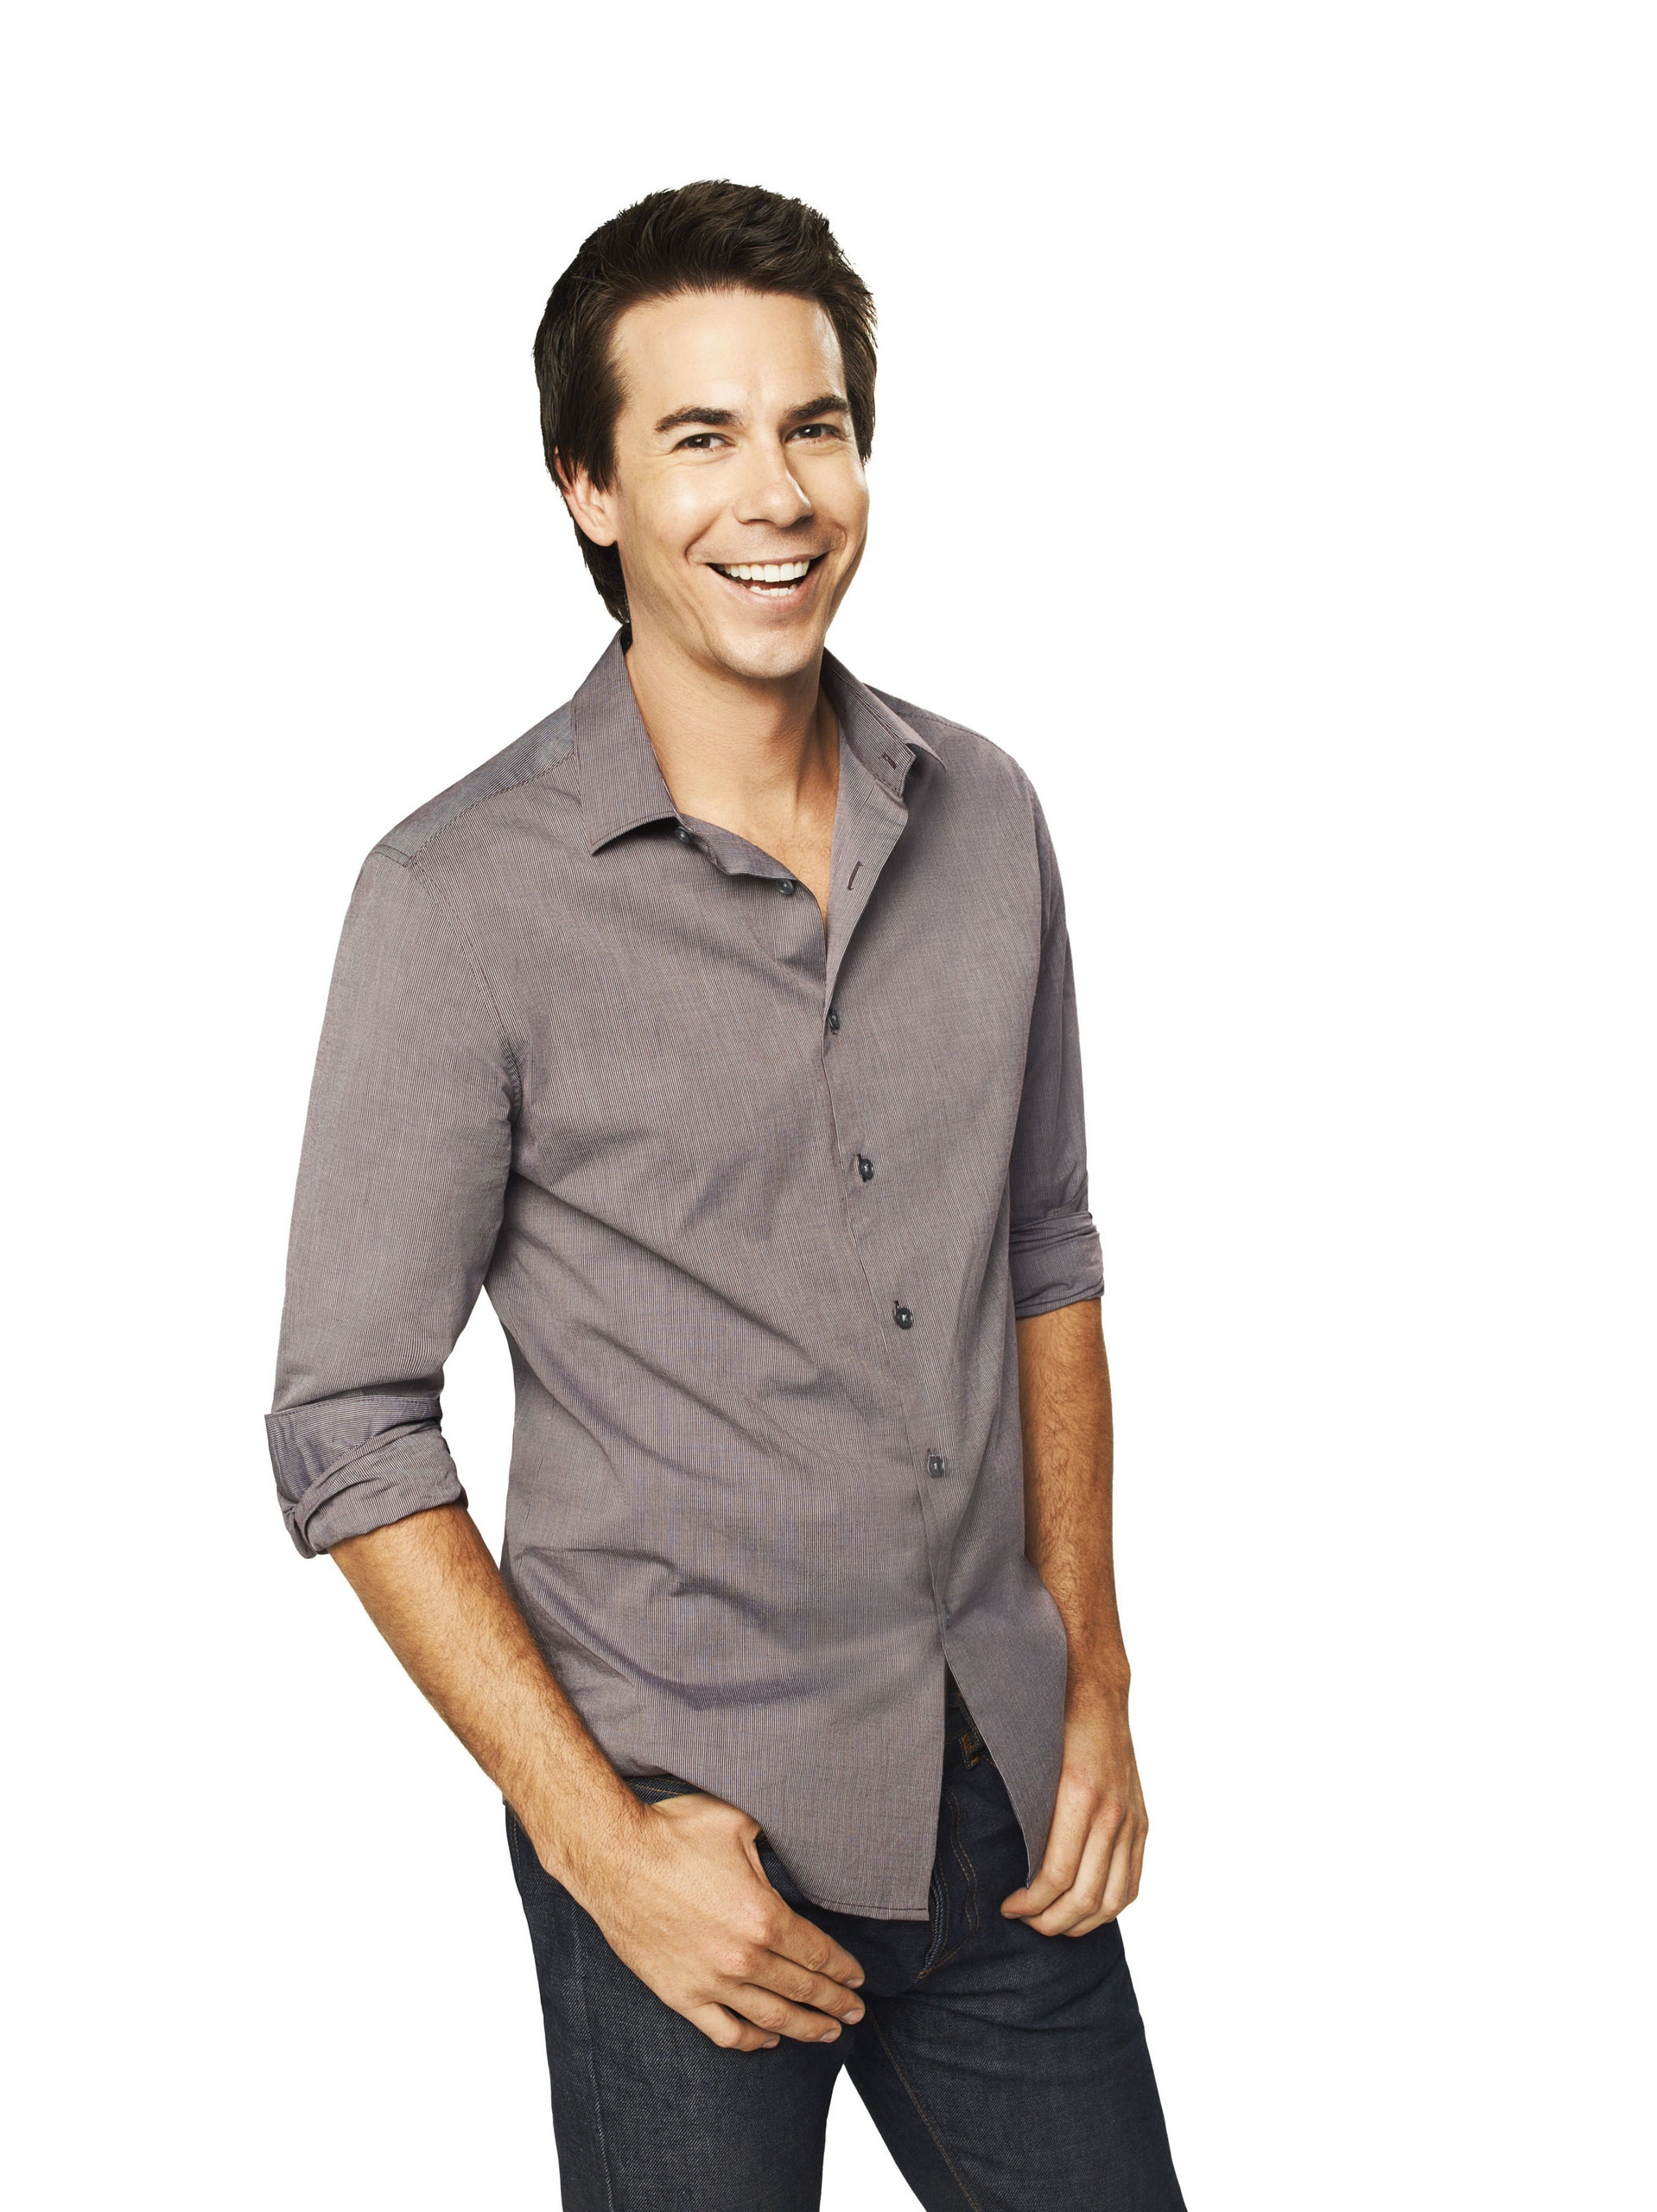 Jerry Trainor Jerry Trainor Jerry Trainor